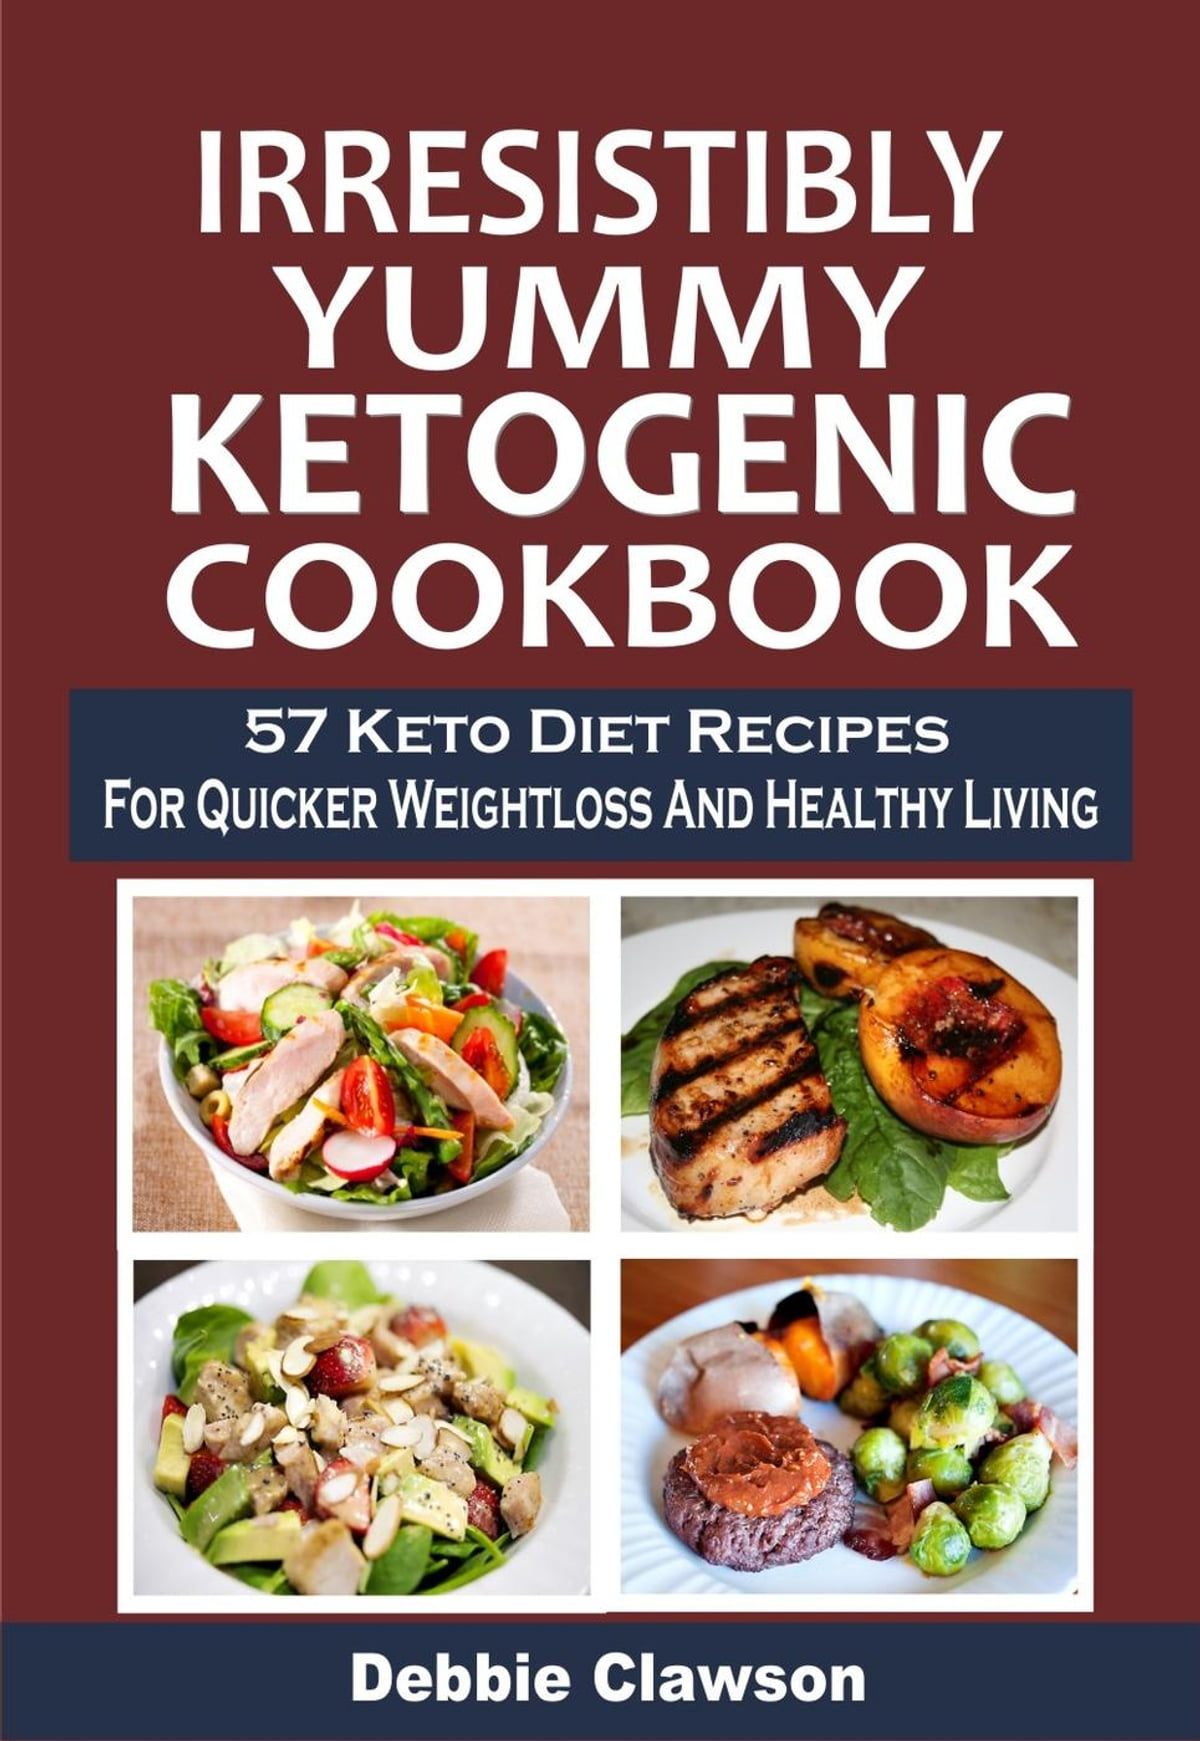 Irresistibly Yummy Ketogenic Cookbook: 57 Keto Diet Recipes For Quicker Weightloss And Healthy Living eBook by Debbie Clawson - 9781519966391 - Rakuten KoboIrresistibly Yummy Ketogenic Cookbook: 57 Keto Diet Recipes For Quicker Weightloss And Healthy Living ebook by Debbie Clawson - Rakuten Kobo - 웹